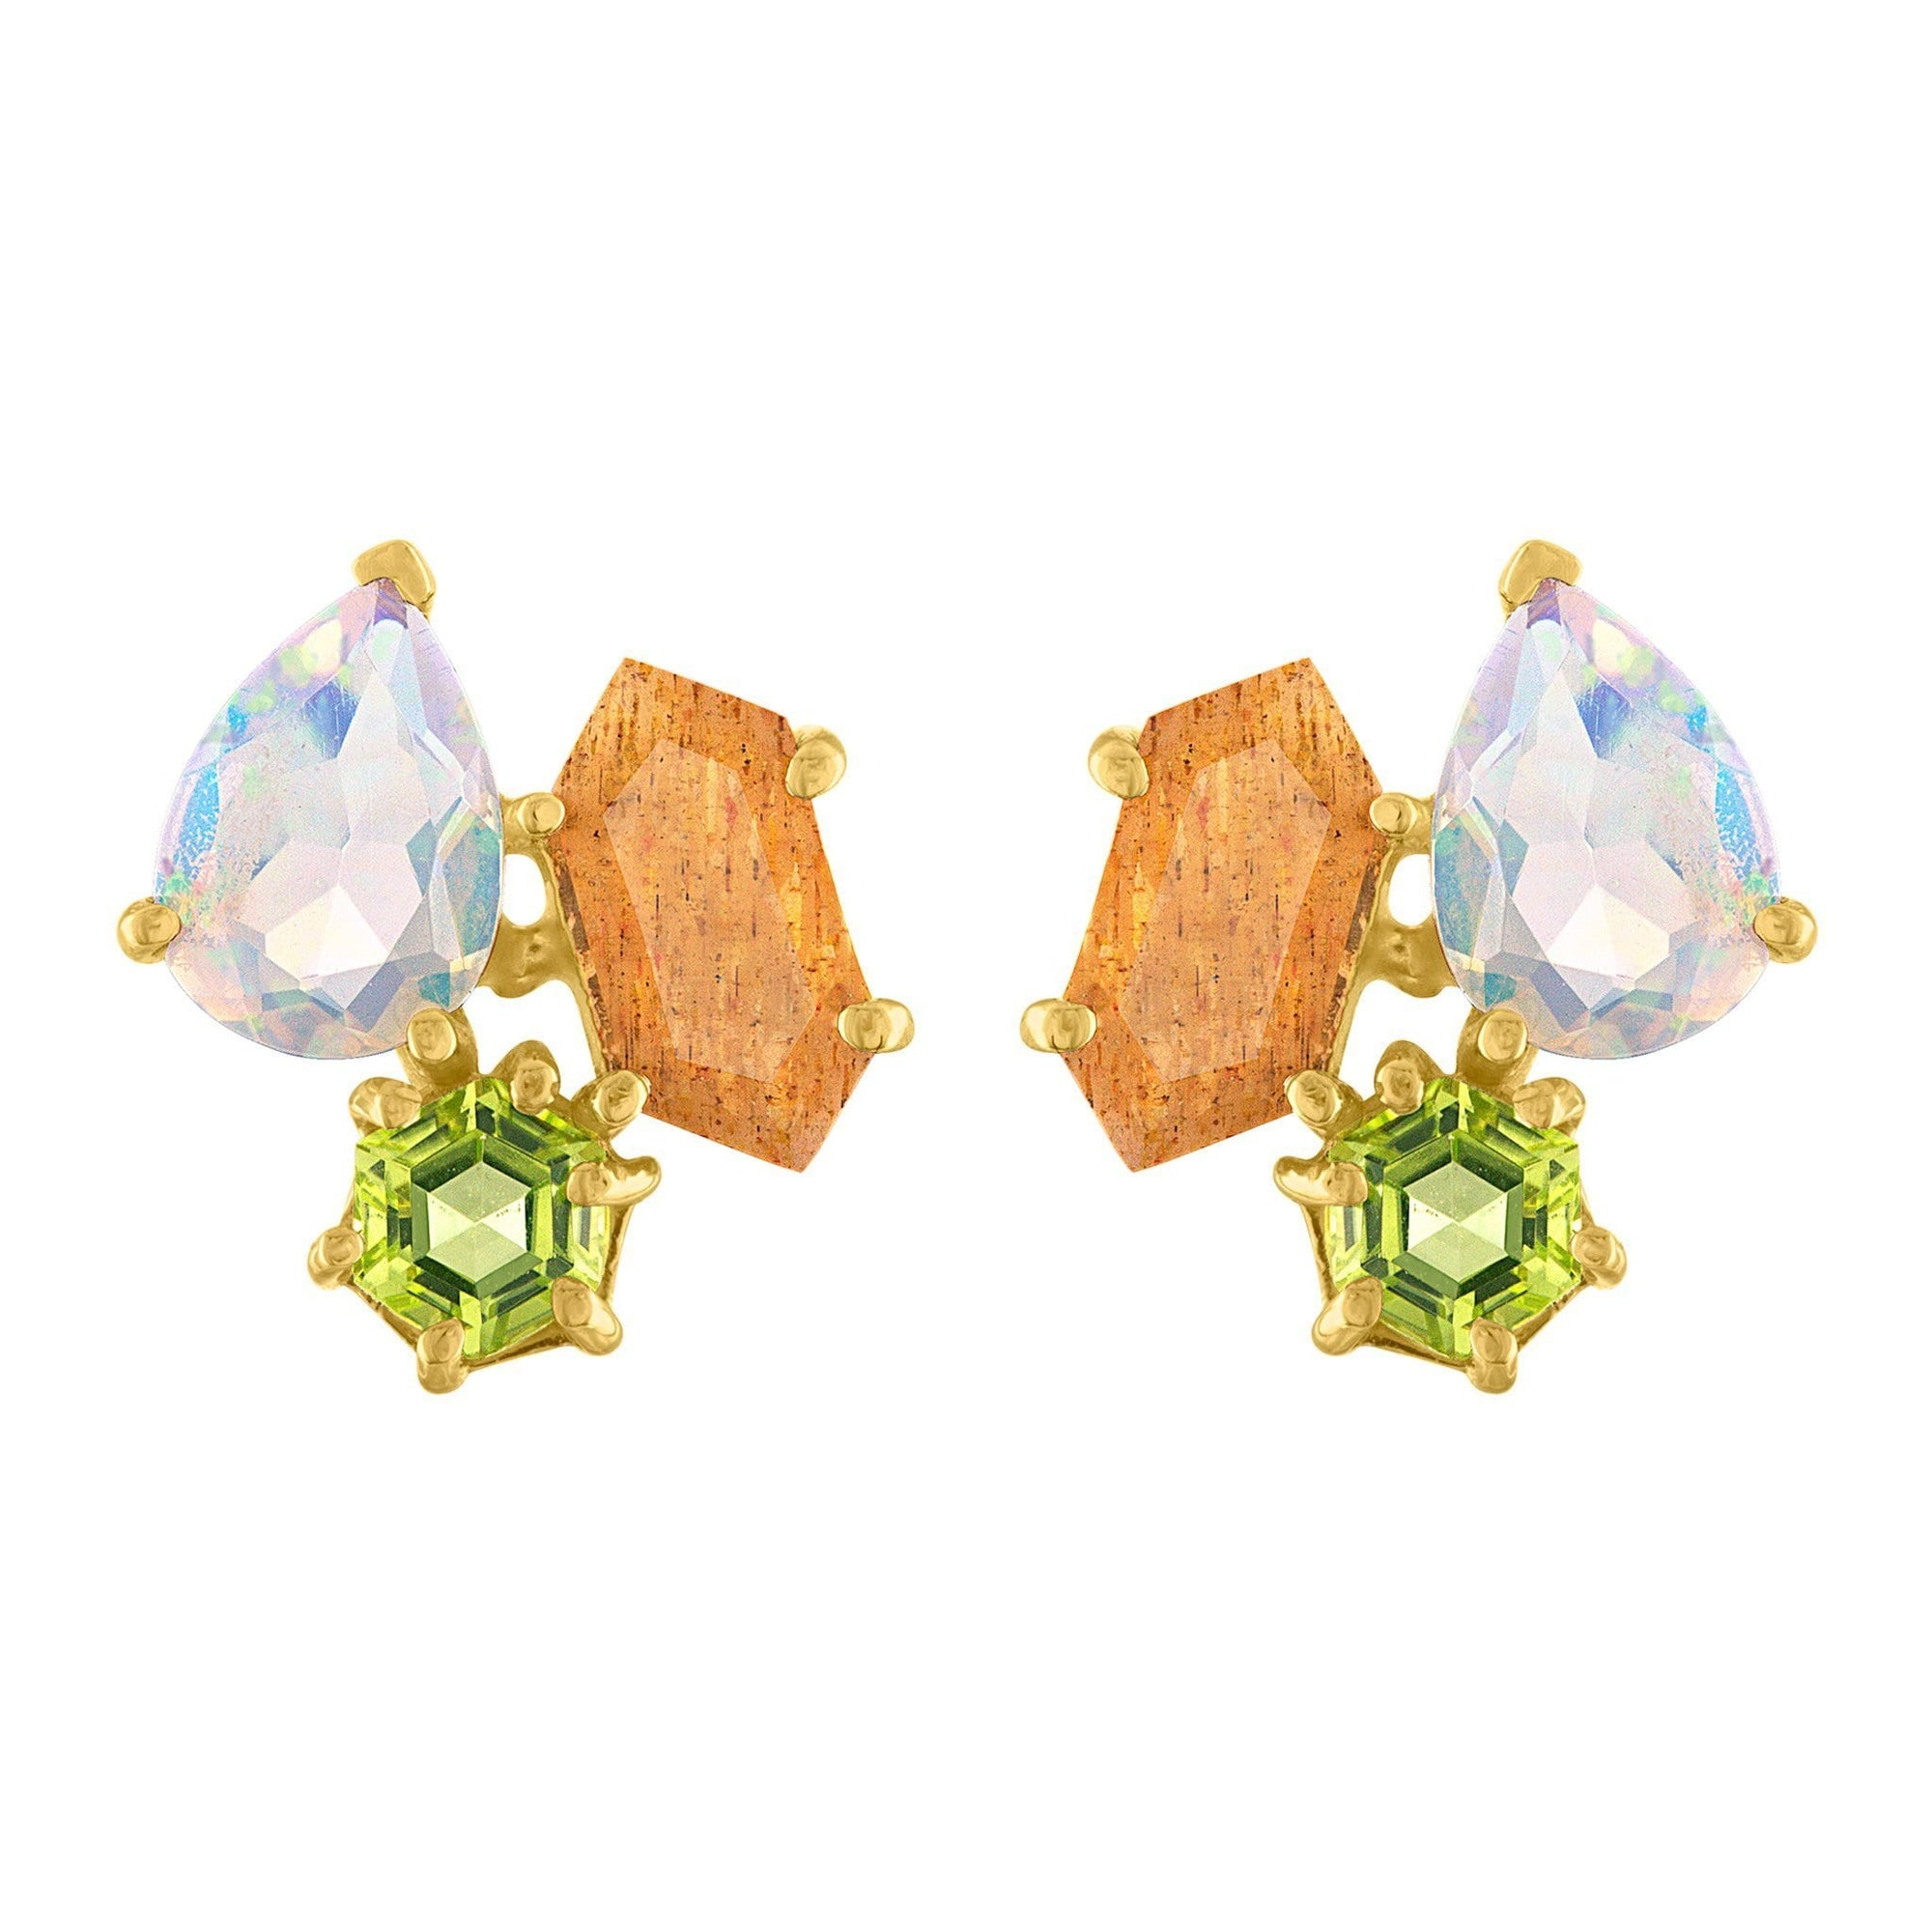 Candyland Stud Earrings: 14k Gold, Peridot Opal, Sunstone Kites